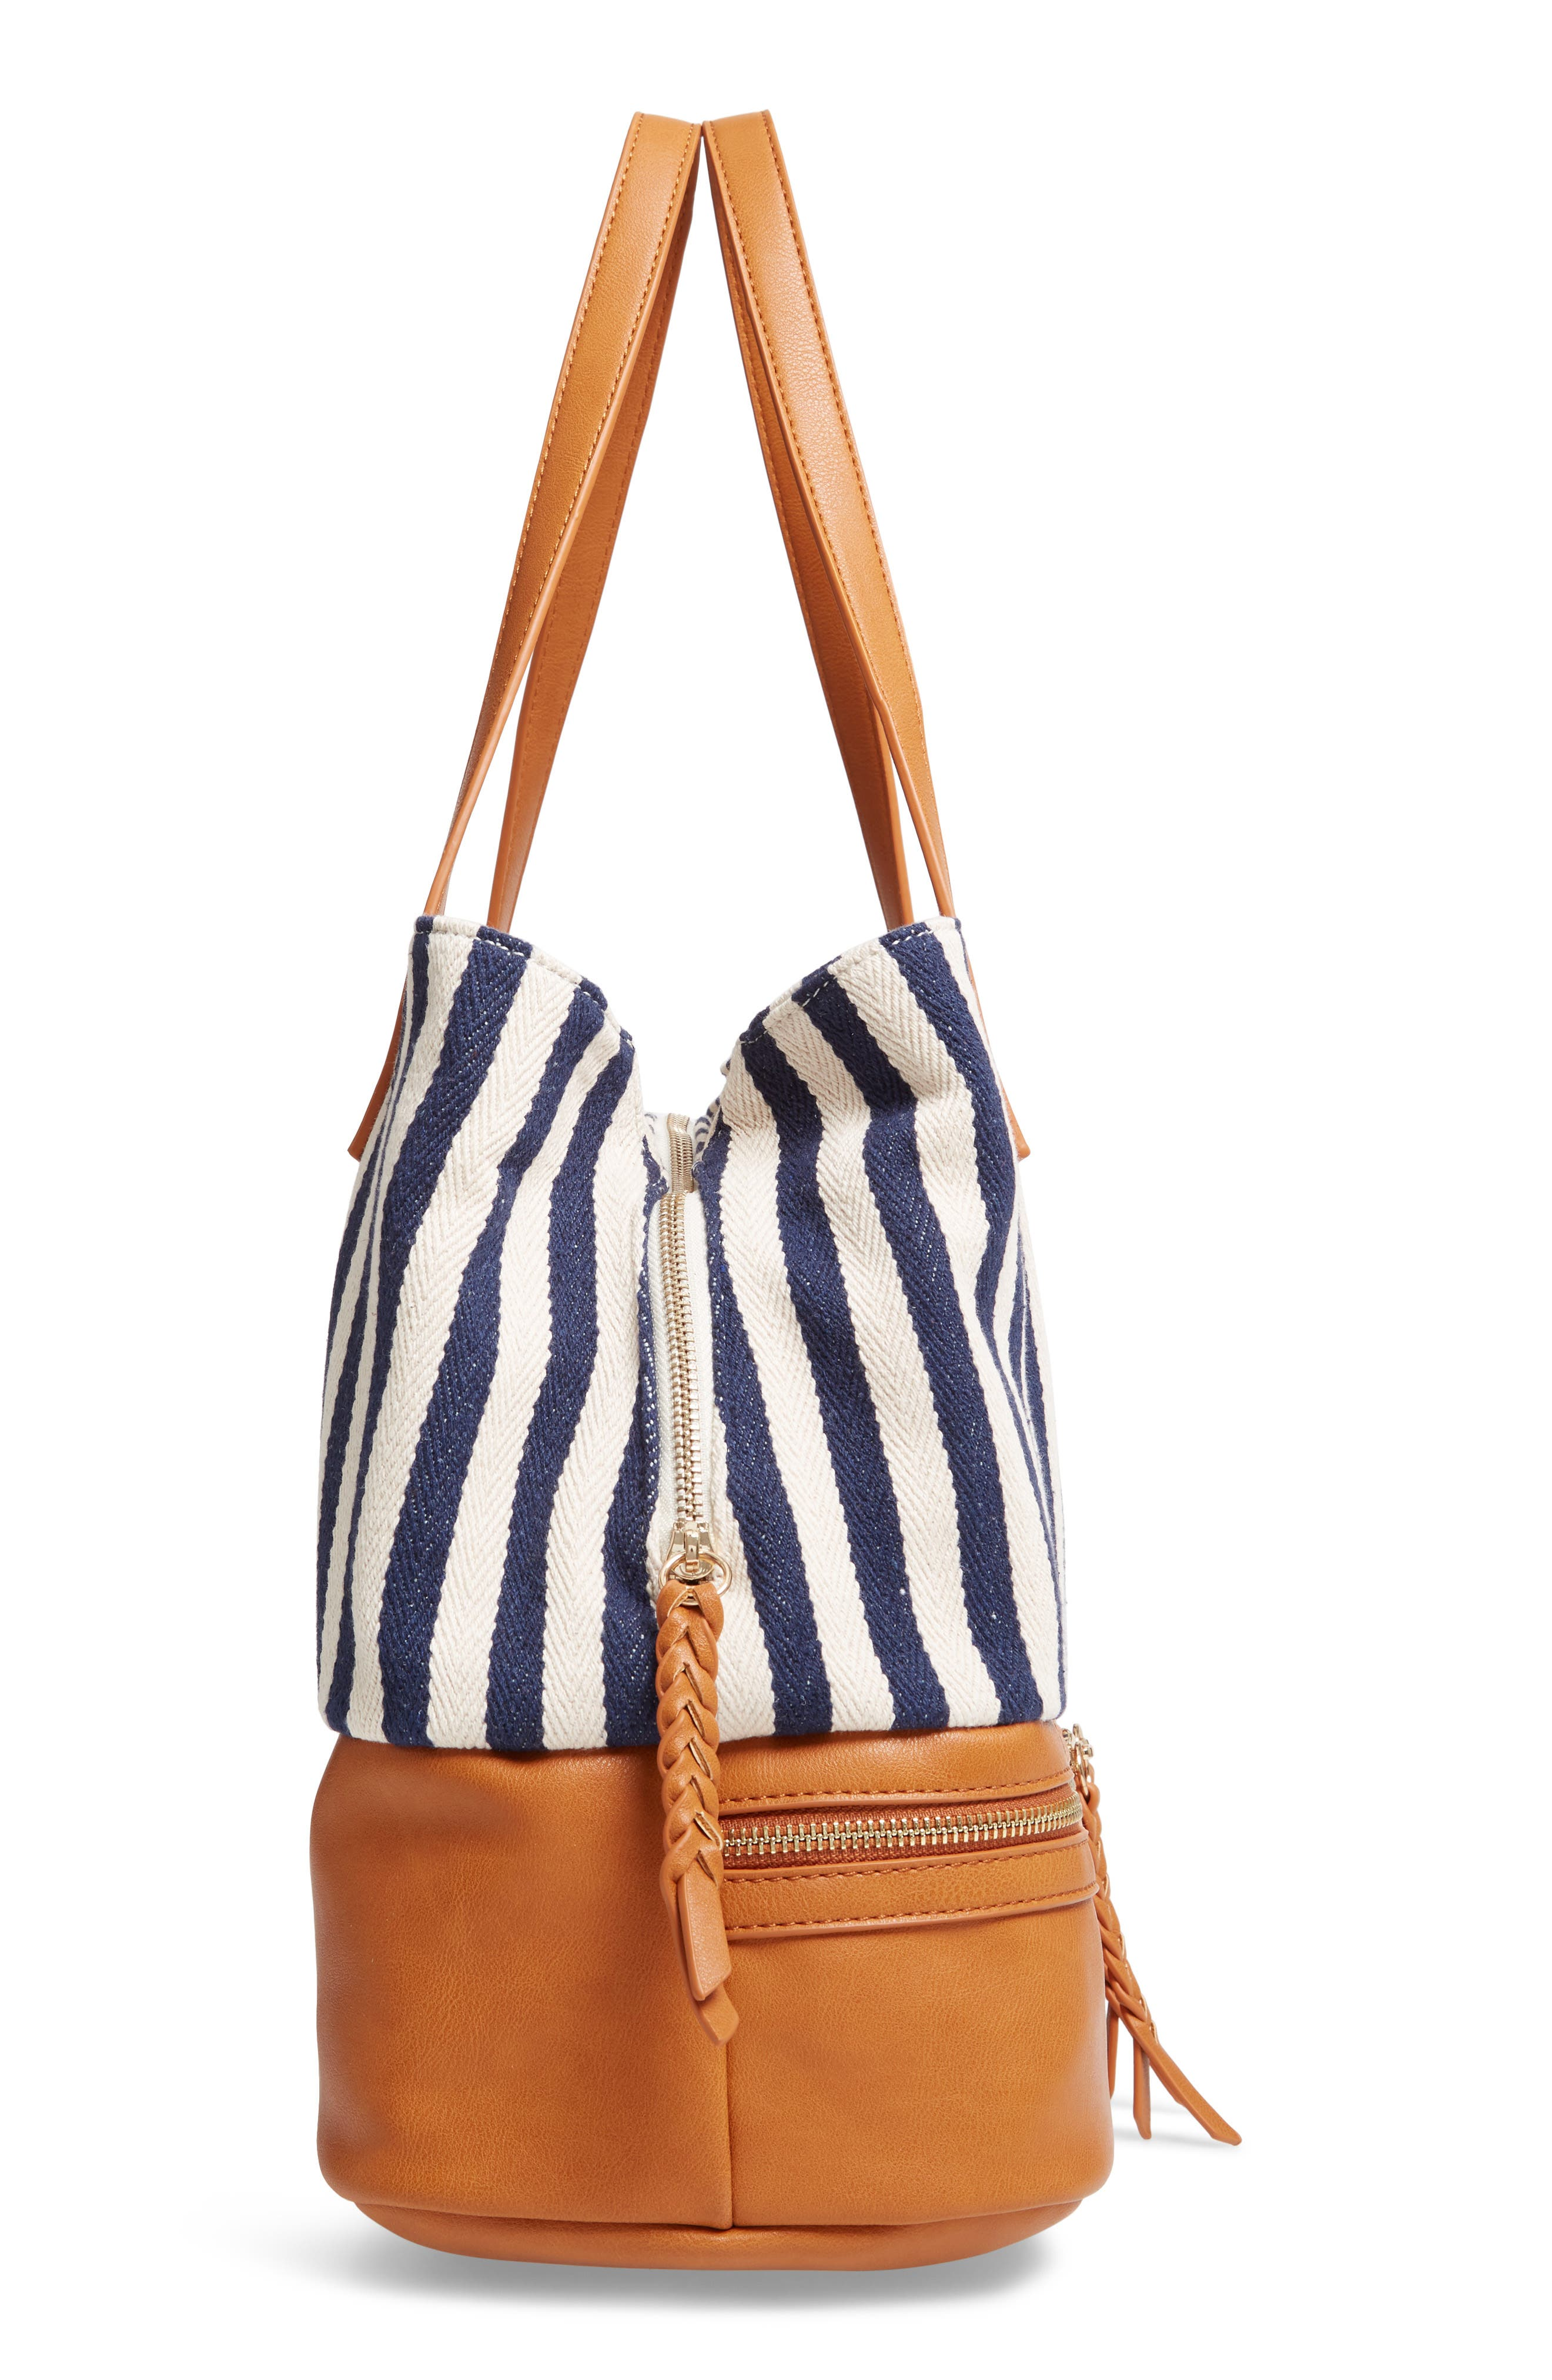 STREET LEVEL, Faux Leather Trim Weekend Bag with Shoe Base, Alternate thumbnail 6, color, 400